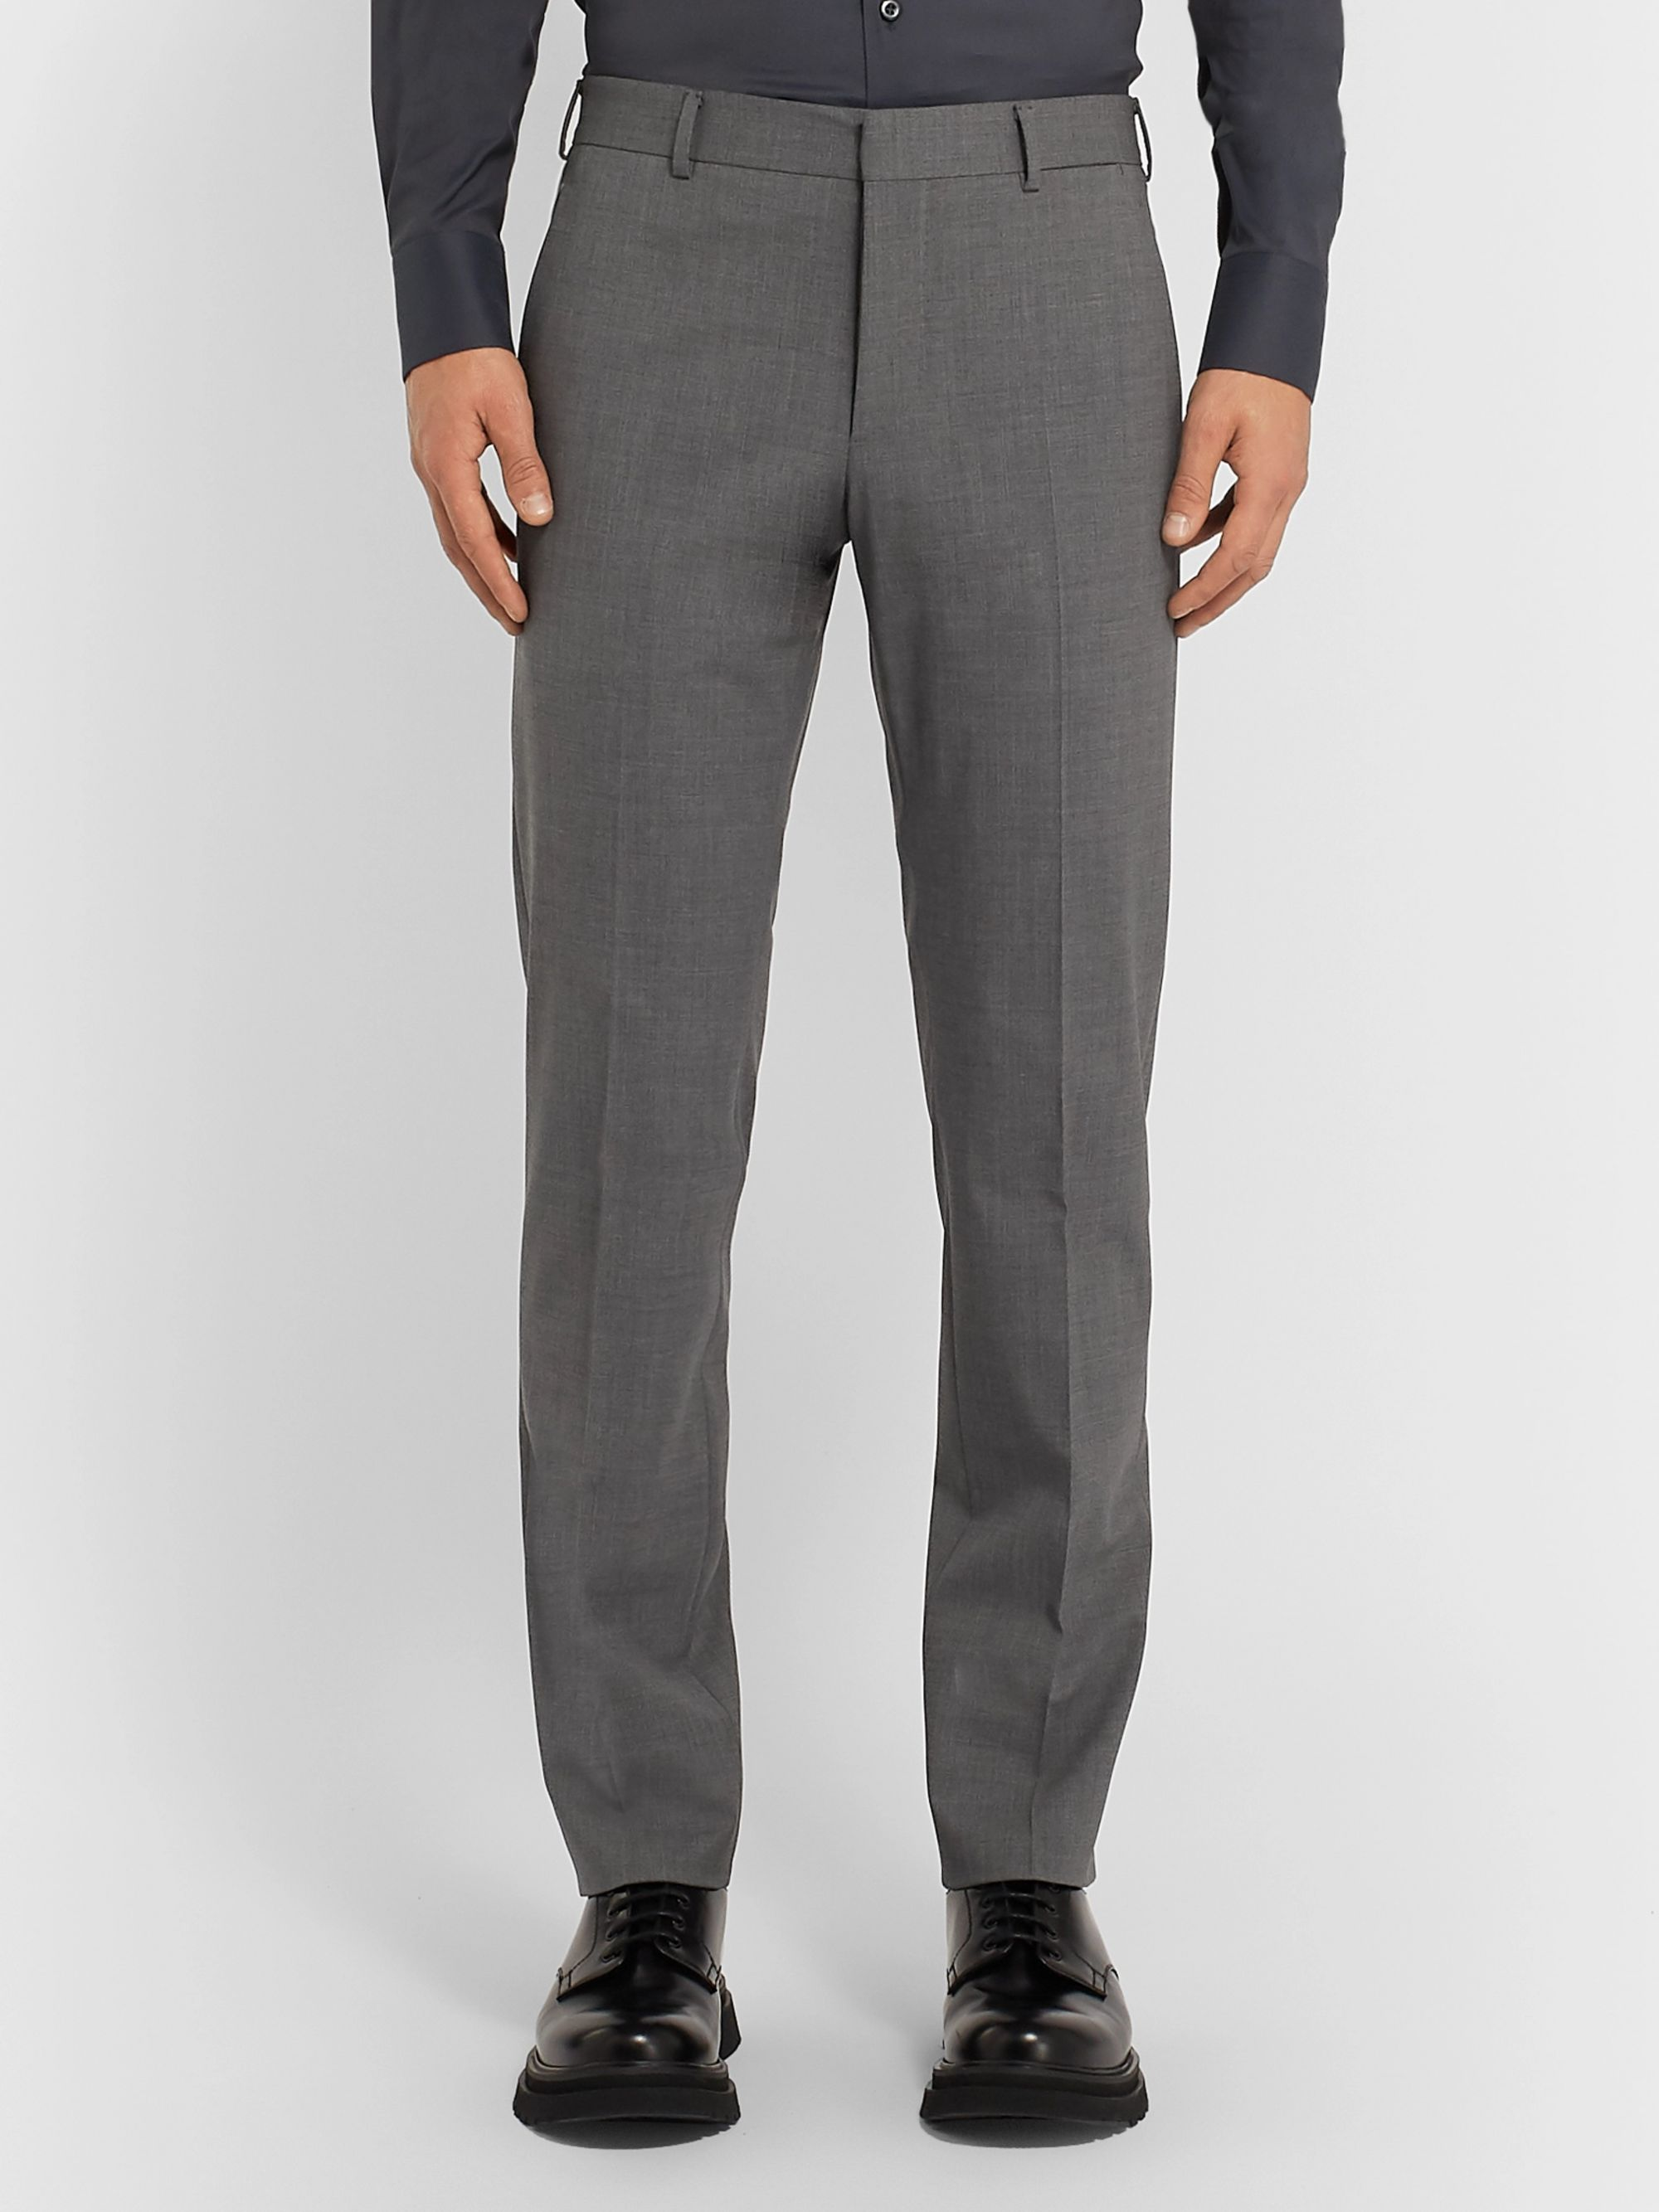 Prada Black Wool-Blend Suit